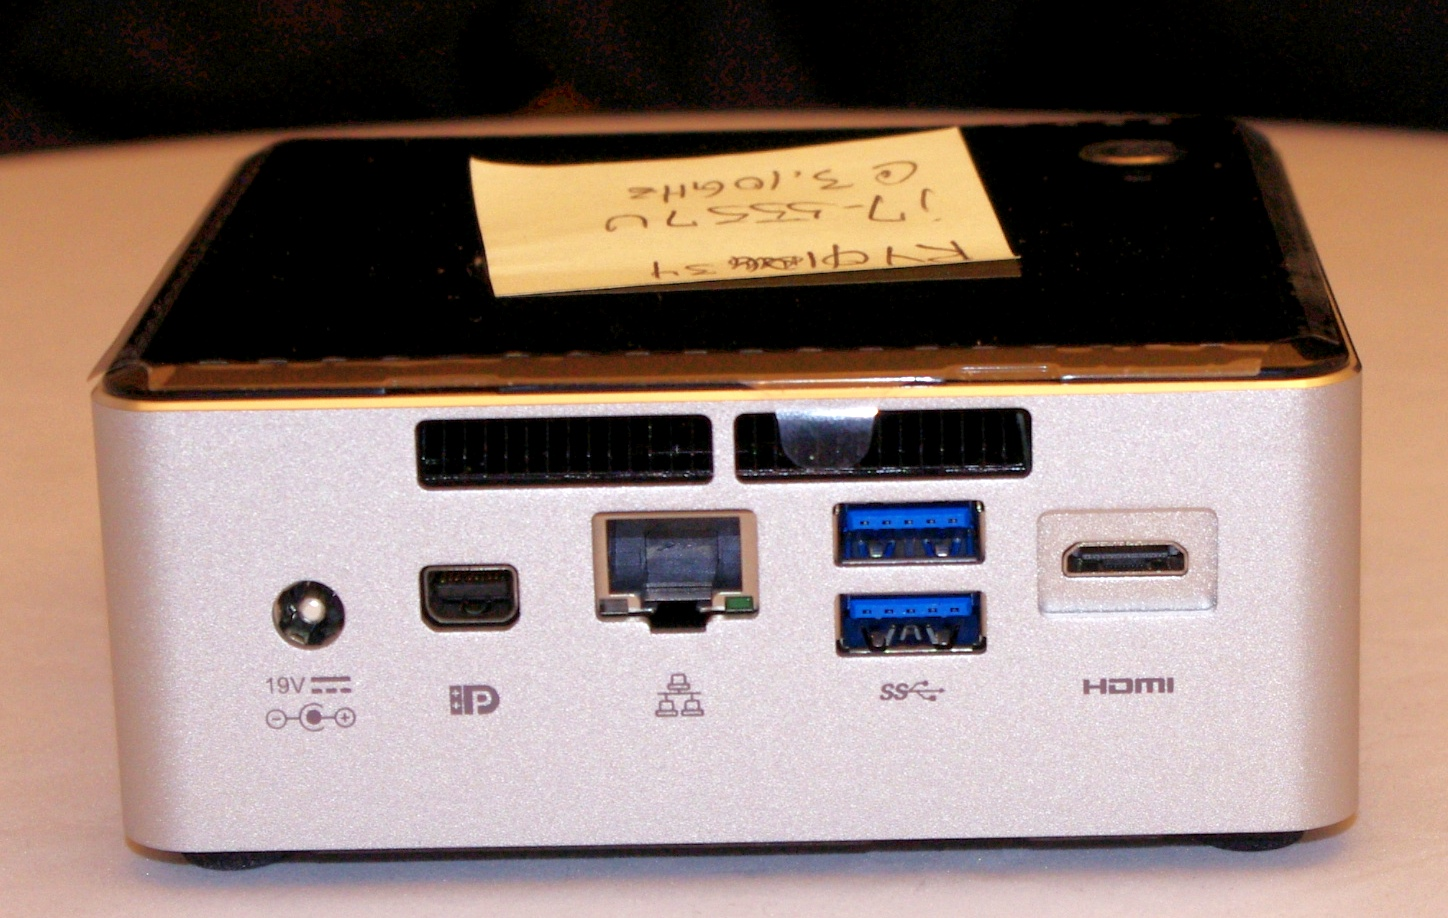 Intel Updates the NUC at CES 2015 with Broadwell-U